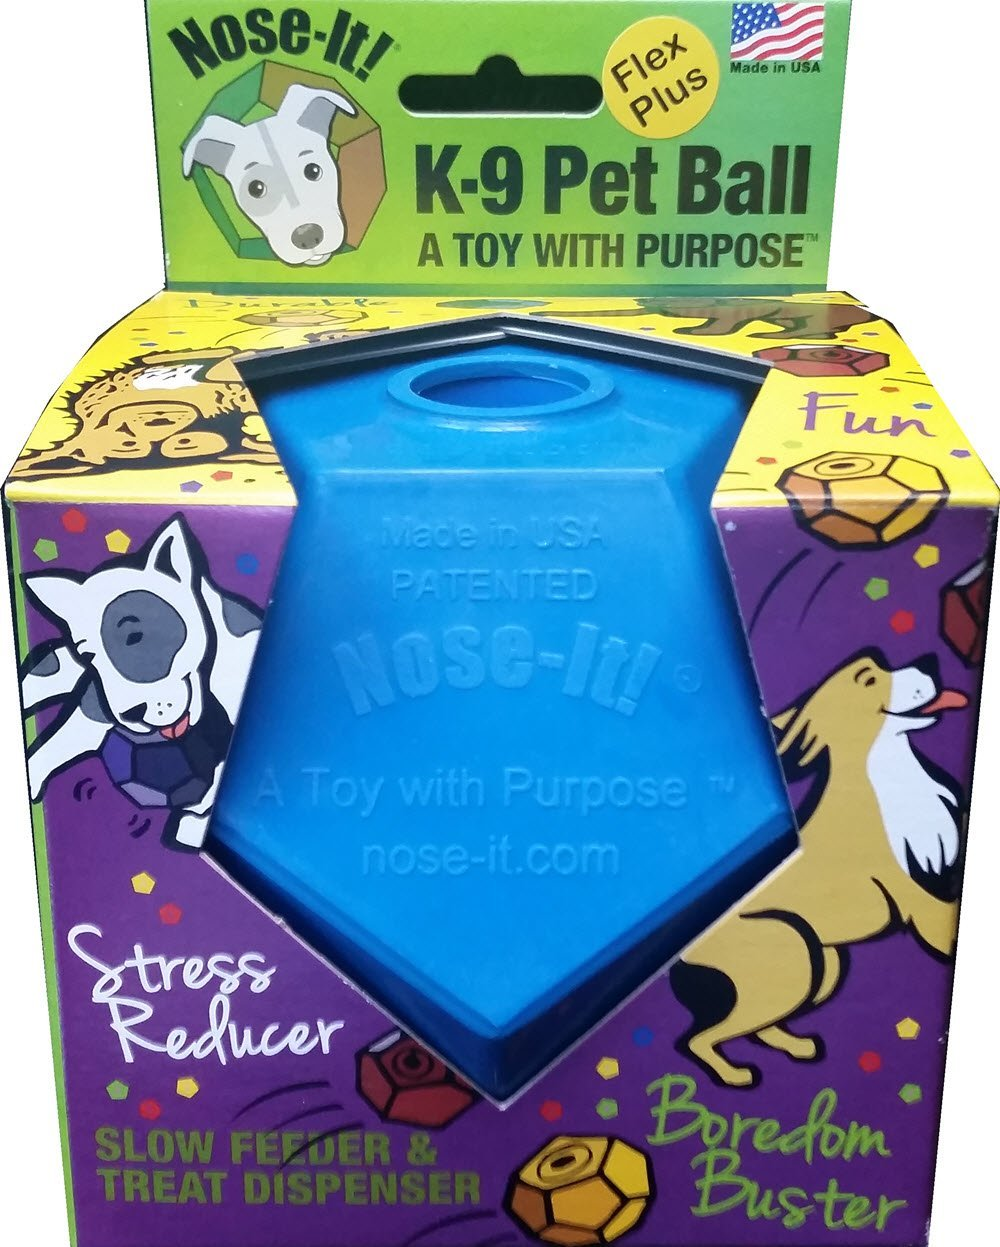 "Nose-It K-9 Pet Ball Flex Plus Blue ""A Toy with Purpose"""